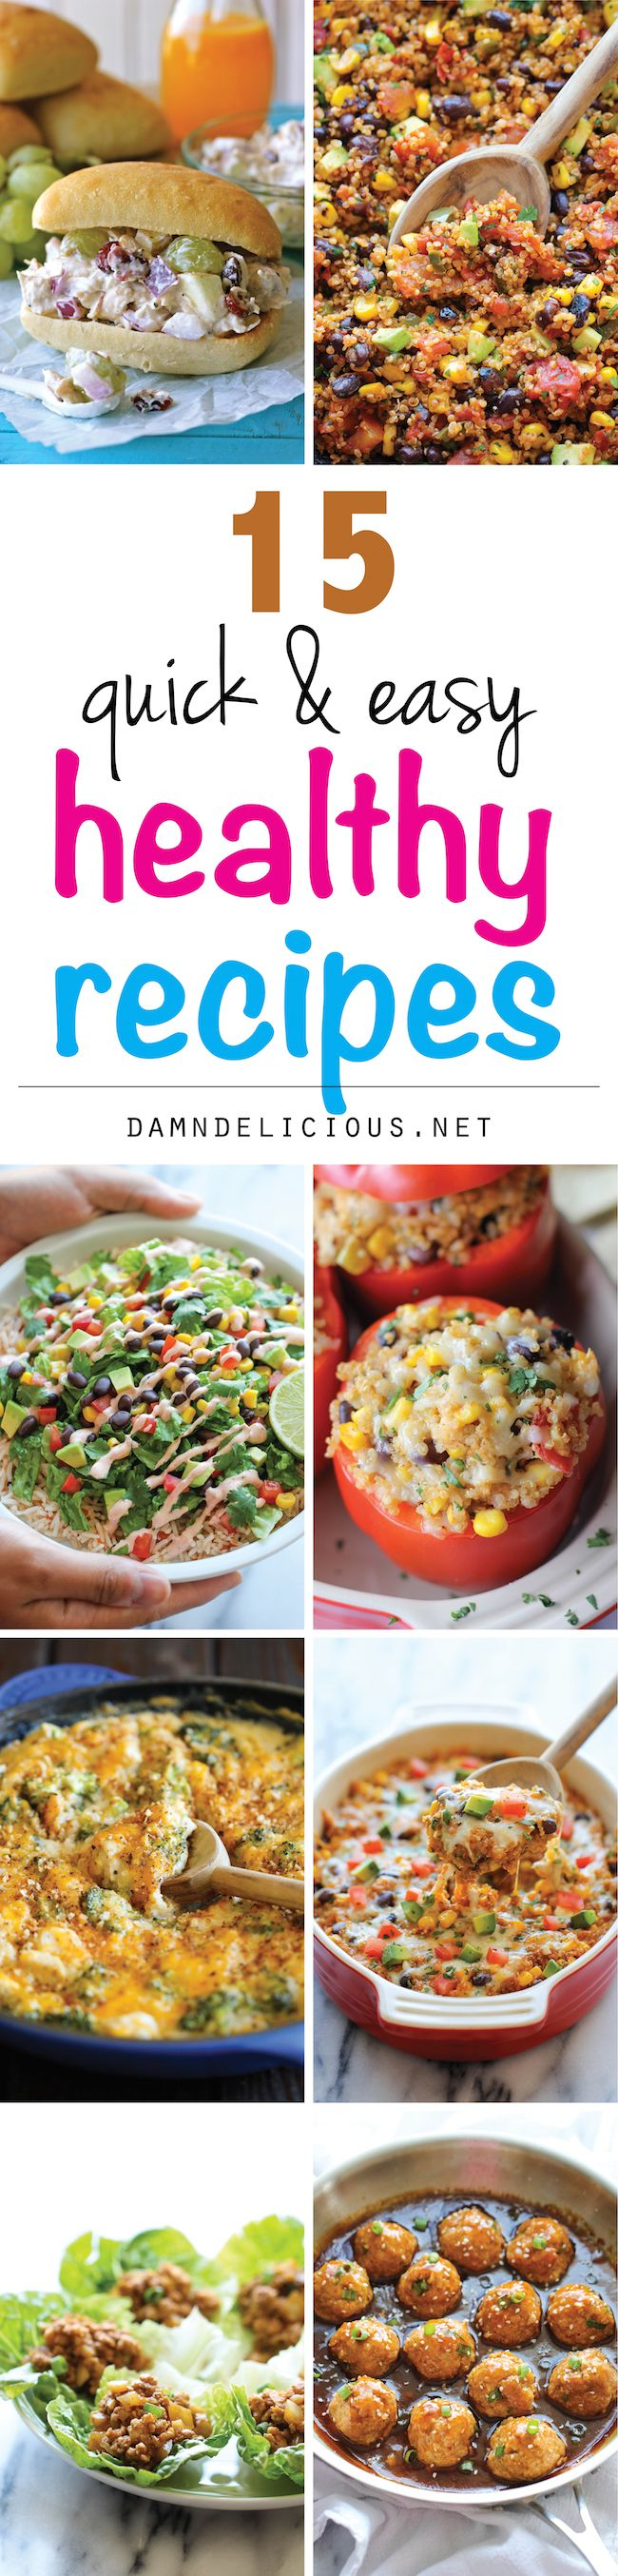 "15 Quick and Easy Healthy Recipes - The best and easiest healthy, comforting recipes that aren't boring at all. And they don't taste ""healthy"" at all!"